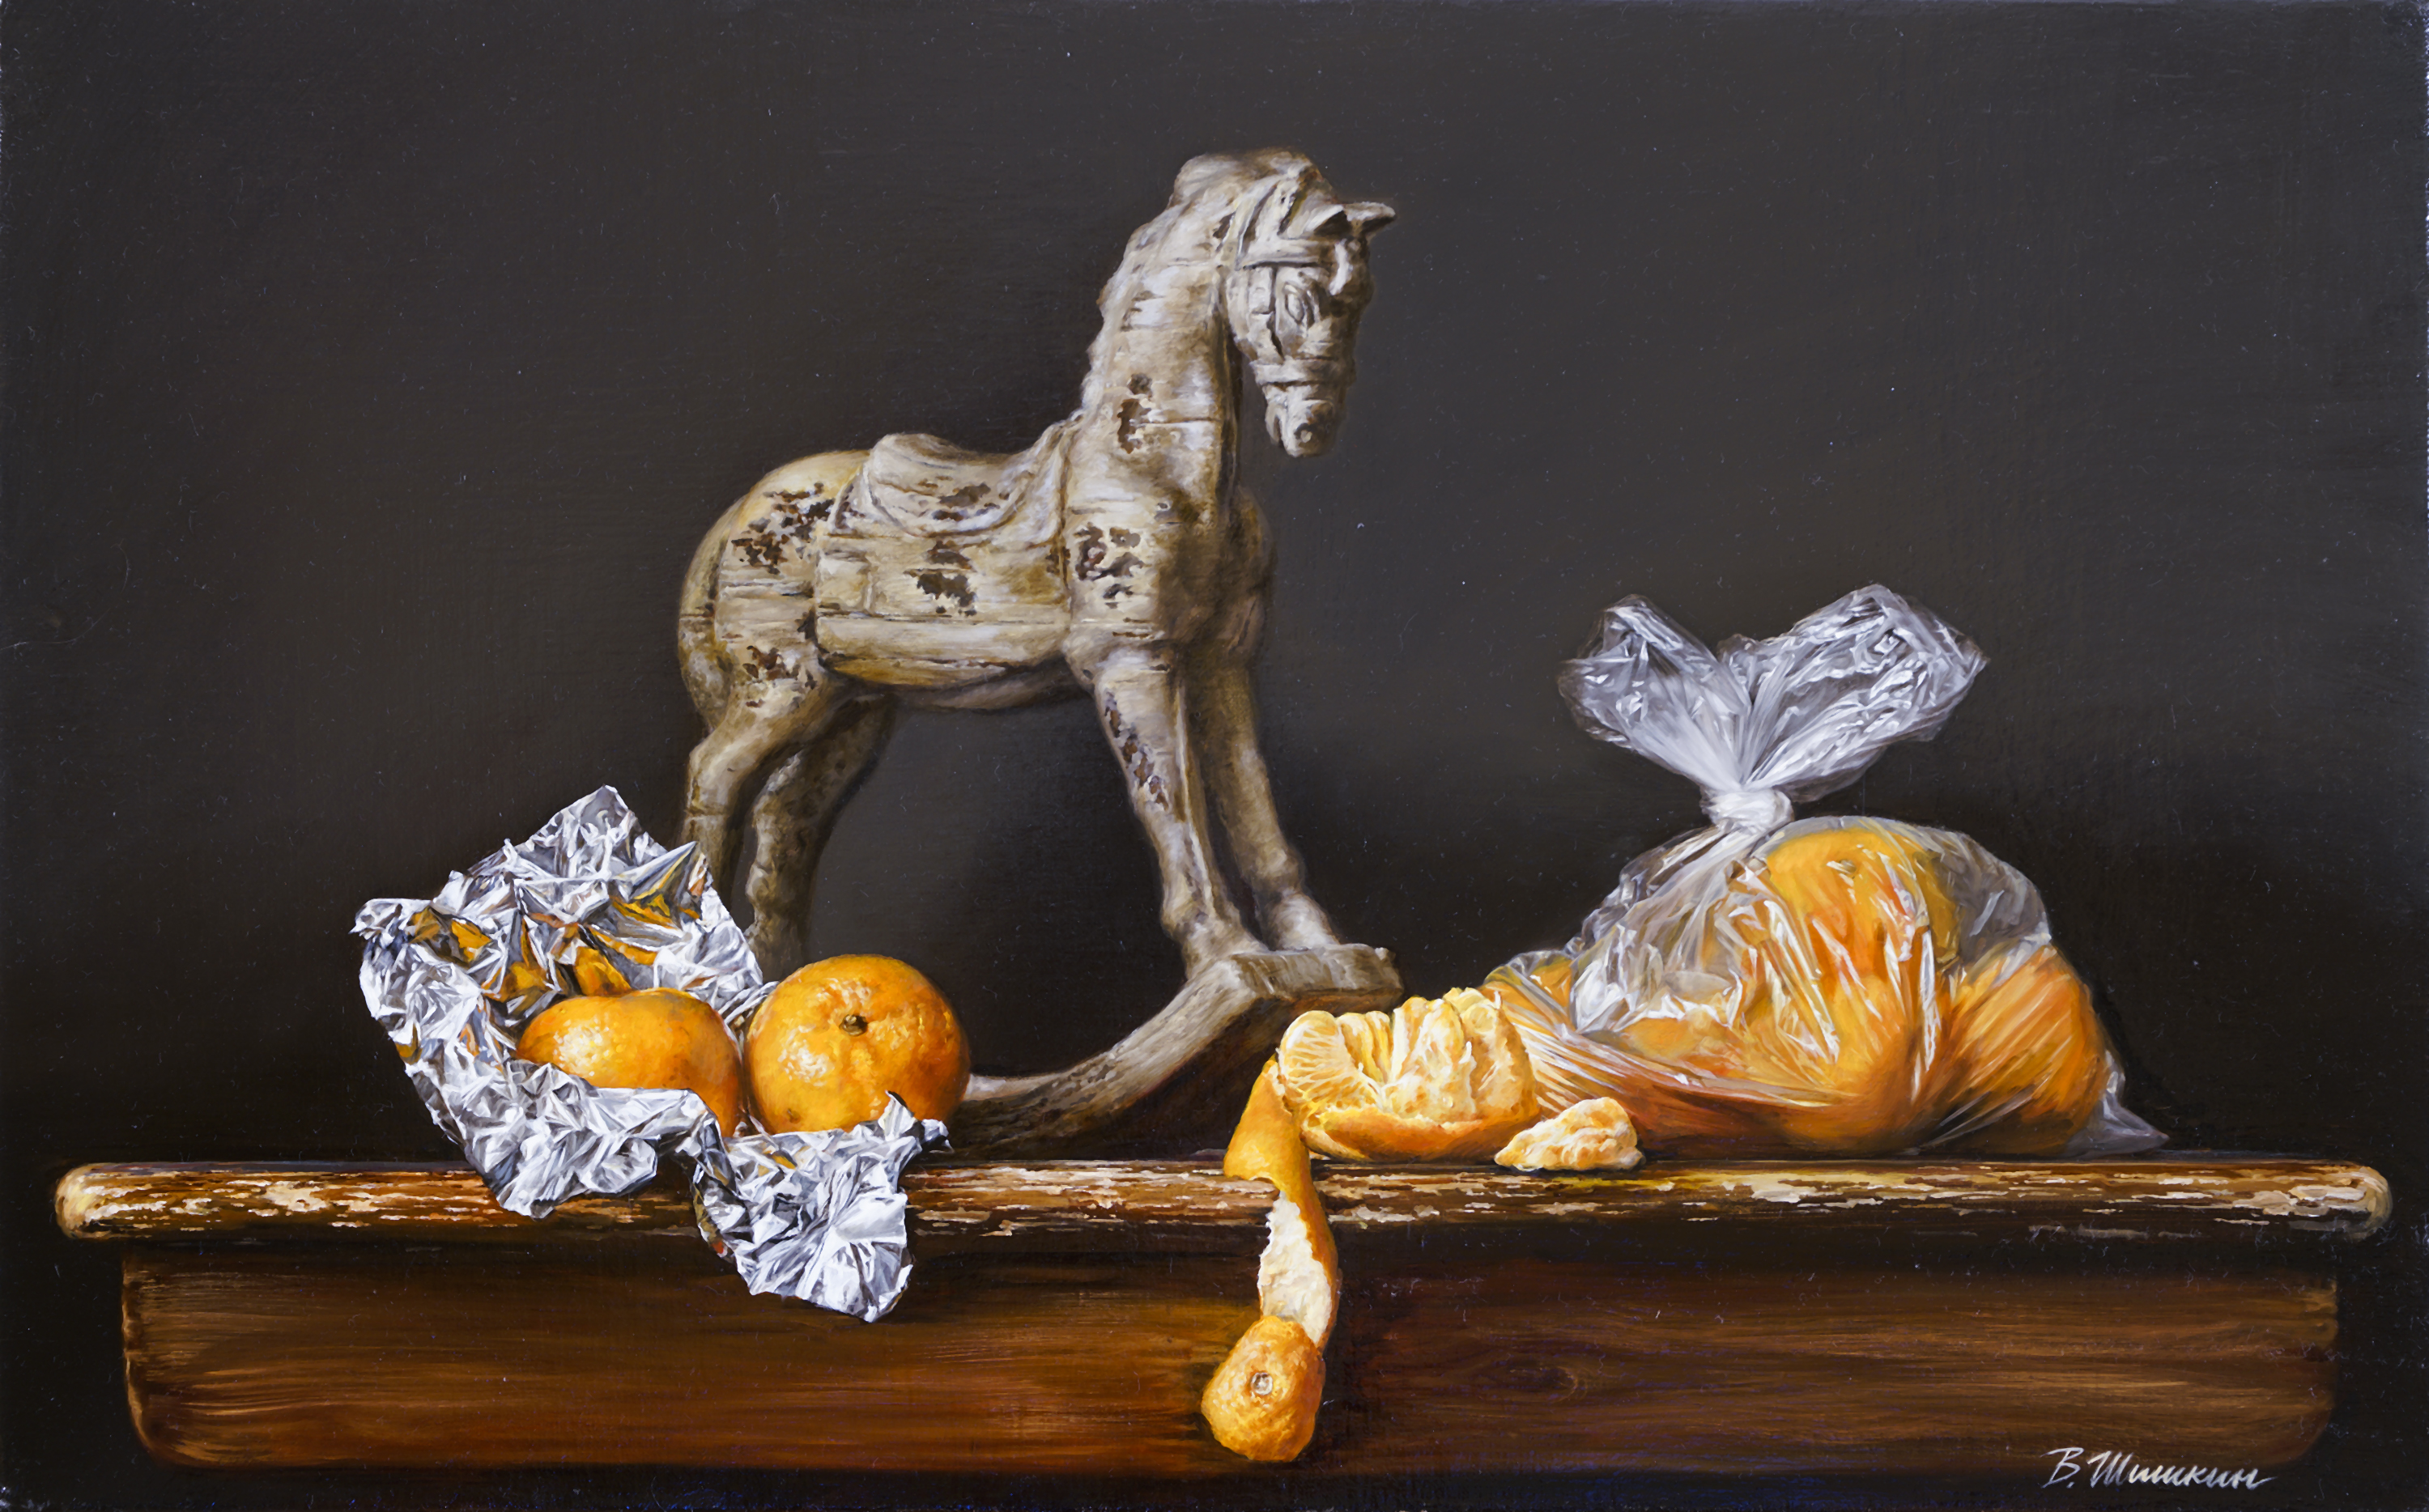 Still life with a horse